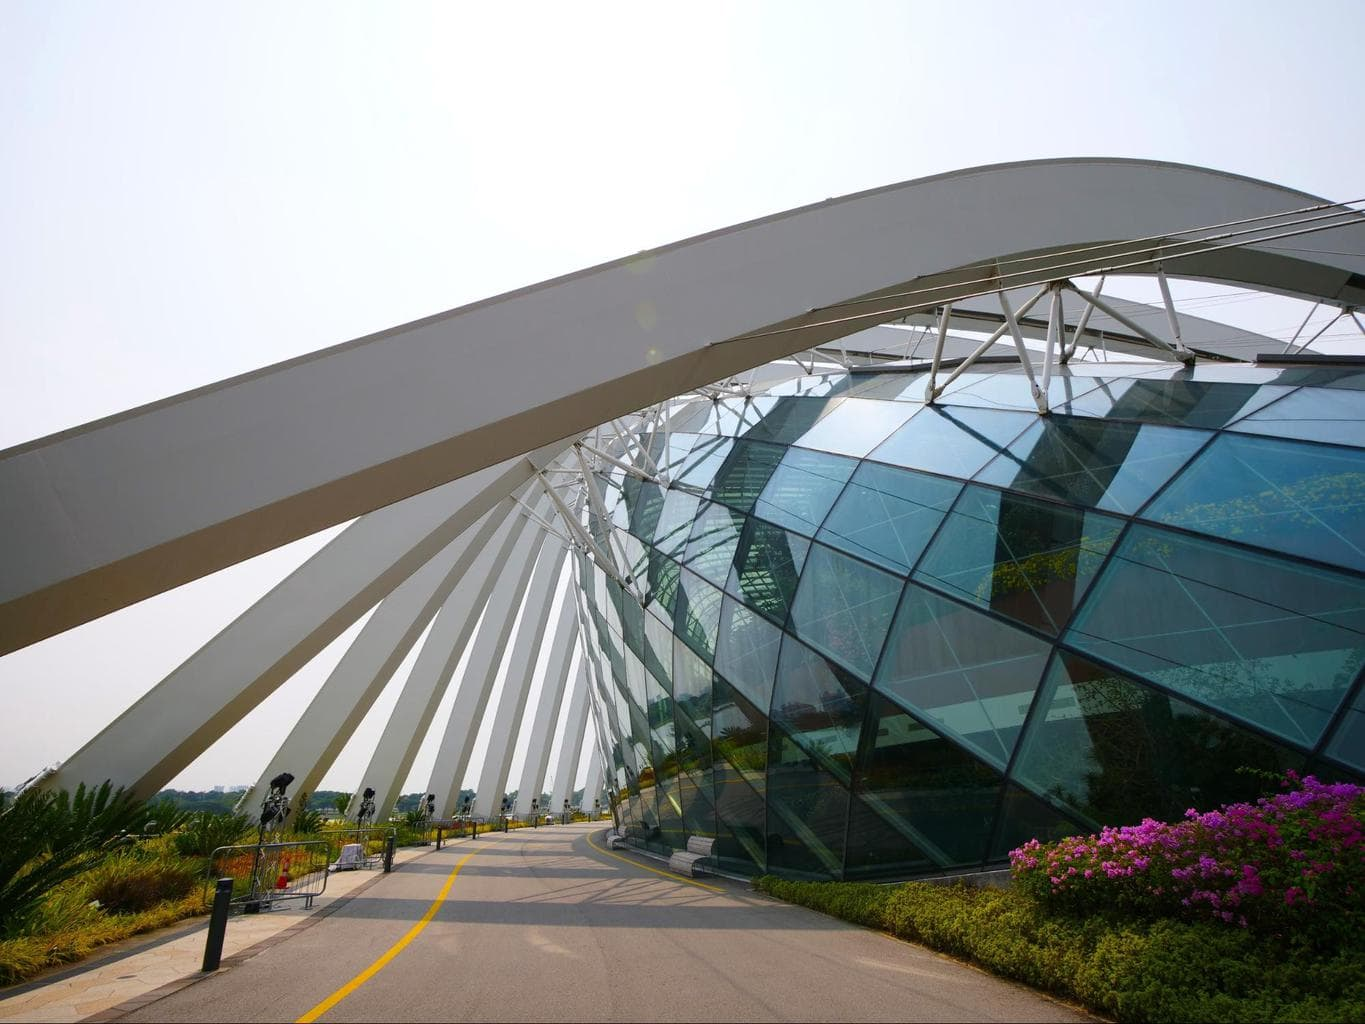 The Conservatories at Gardens by the Bay